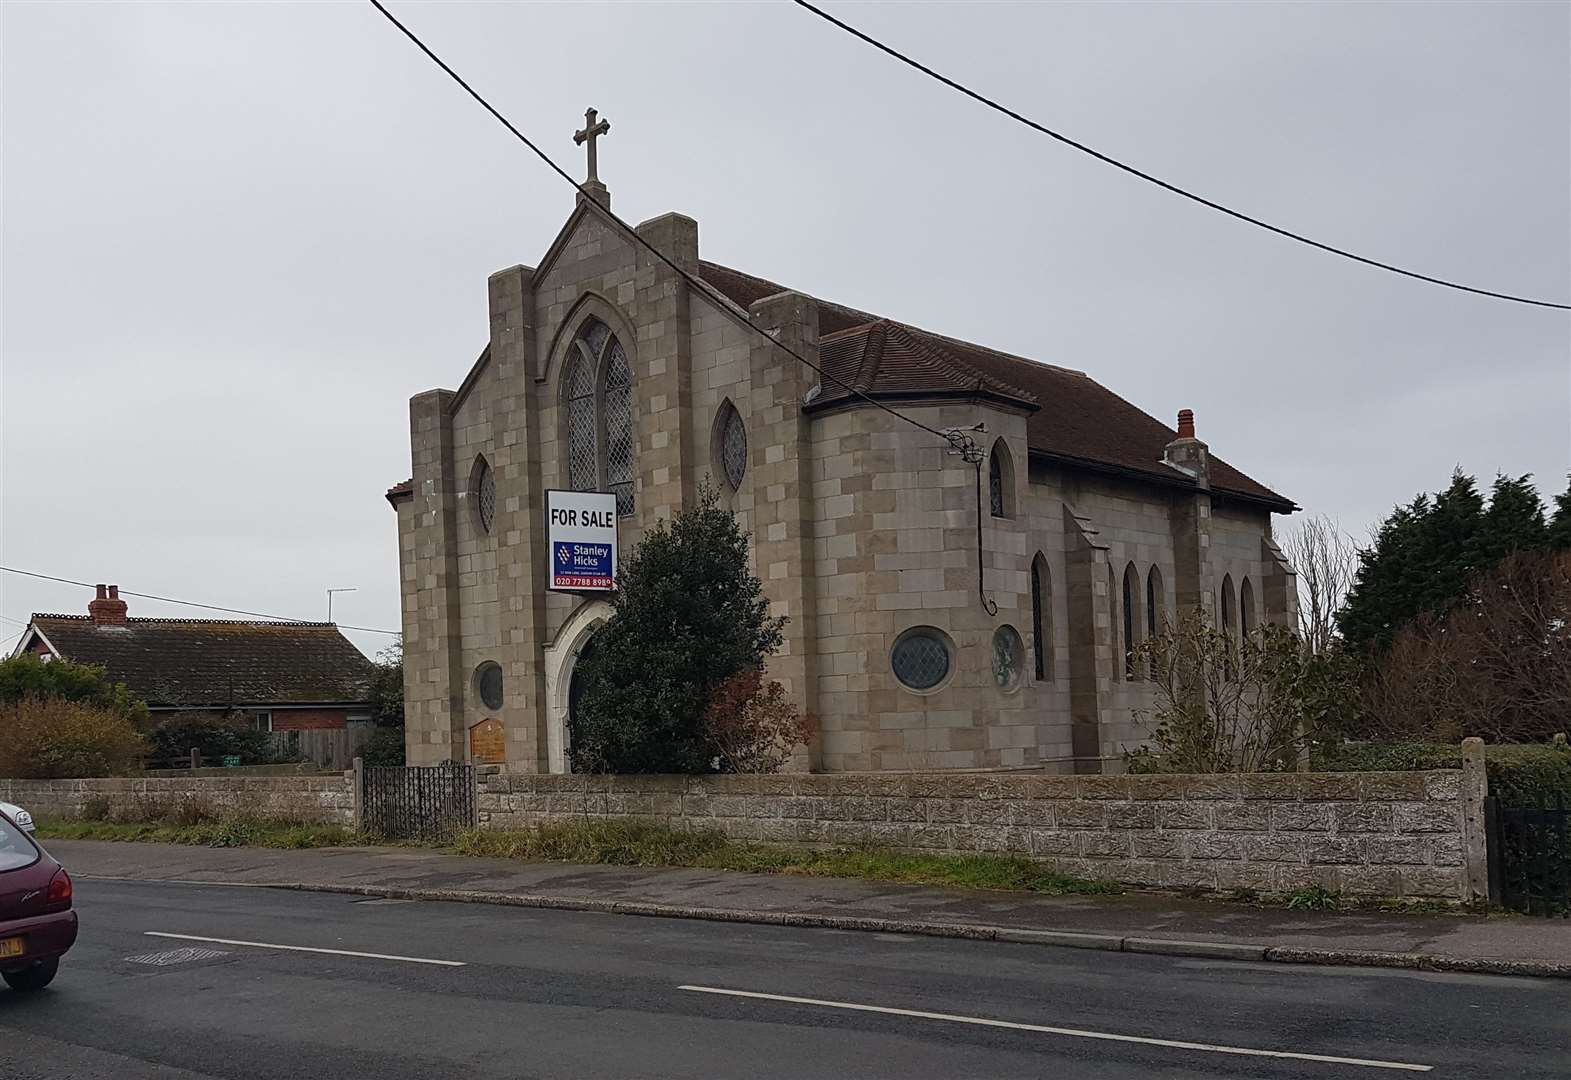 Houses destined for land at historic and derelict church